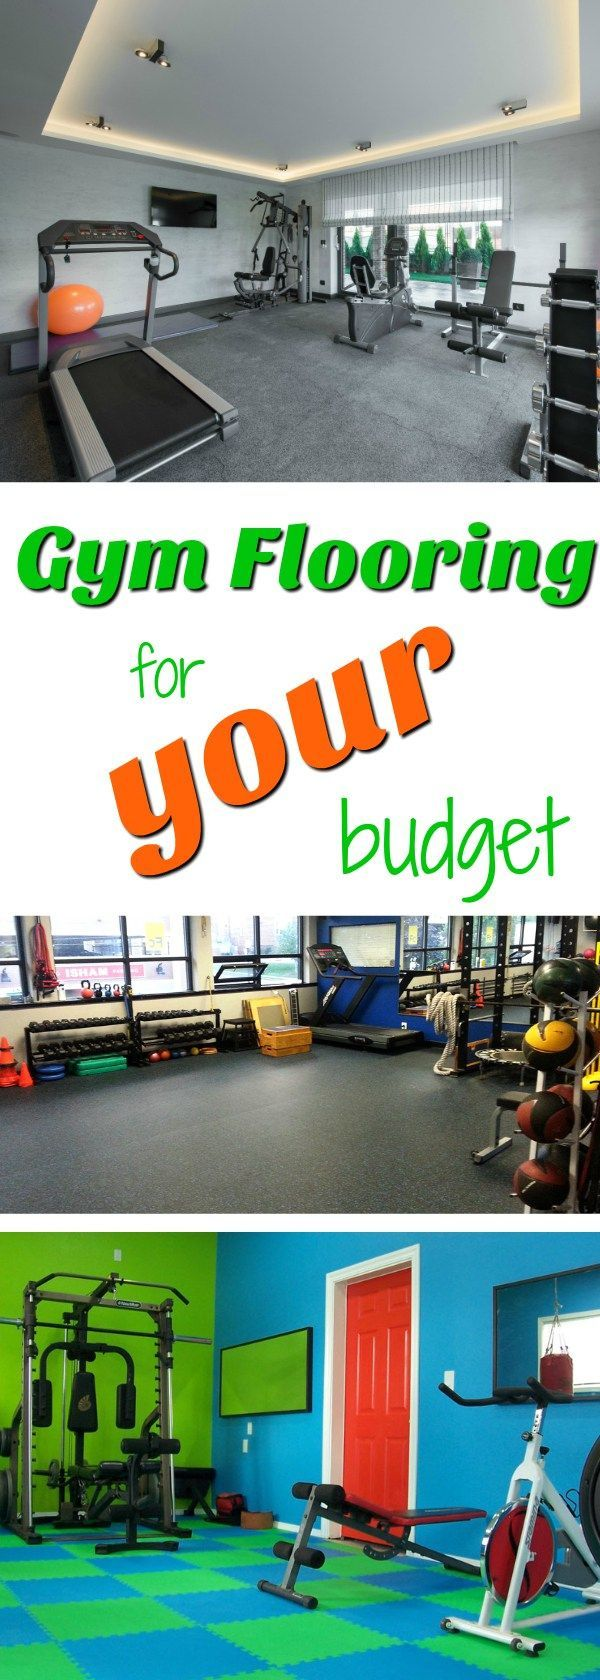 Home Gym Flooring For Your Budget